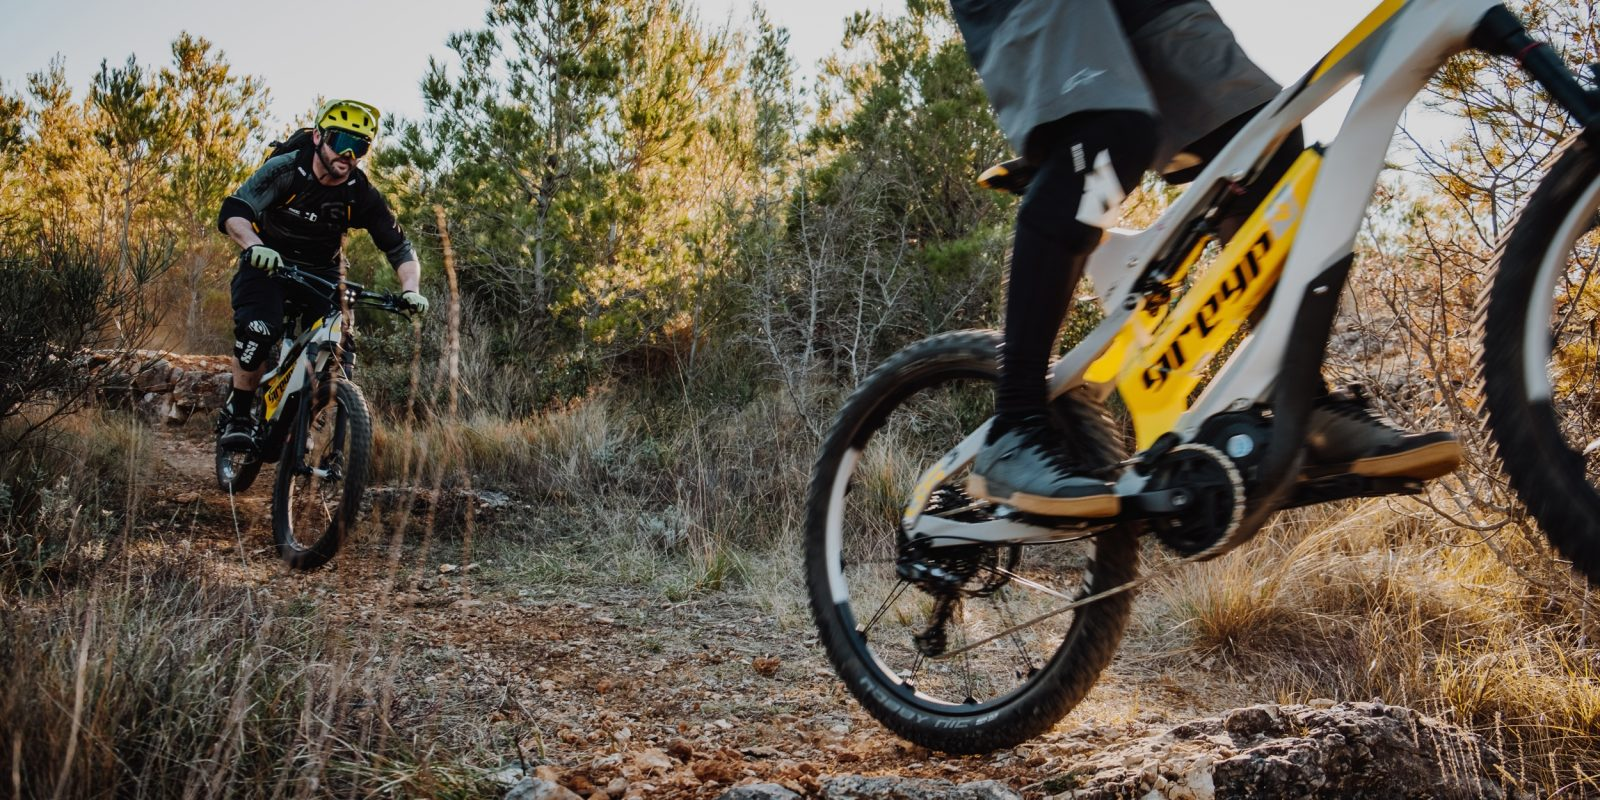 c596415e608 The new Greyp G6 electric mountain bike was unveiled minutes ago in Zagreb,  Croatia.